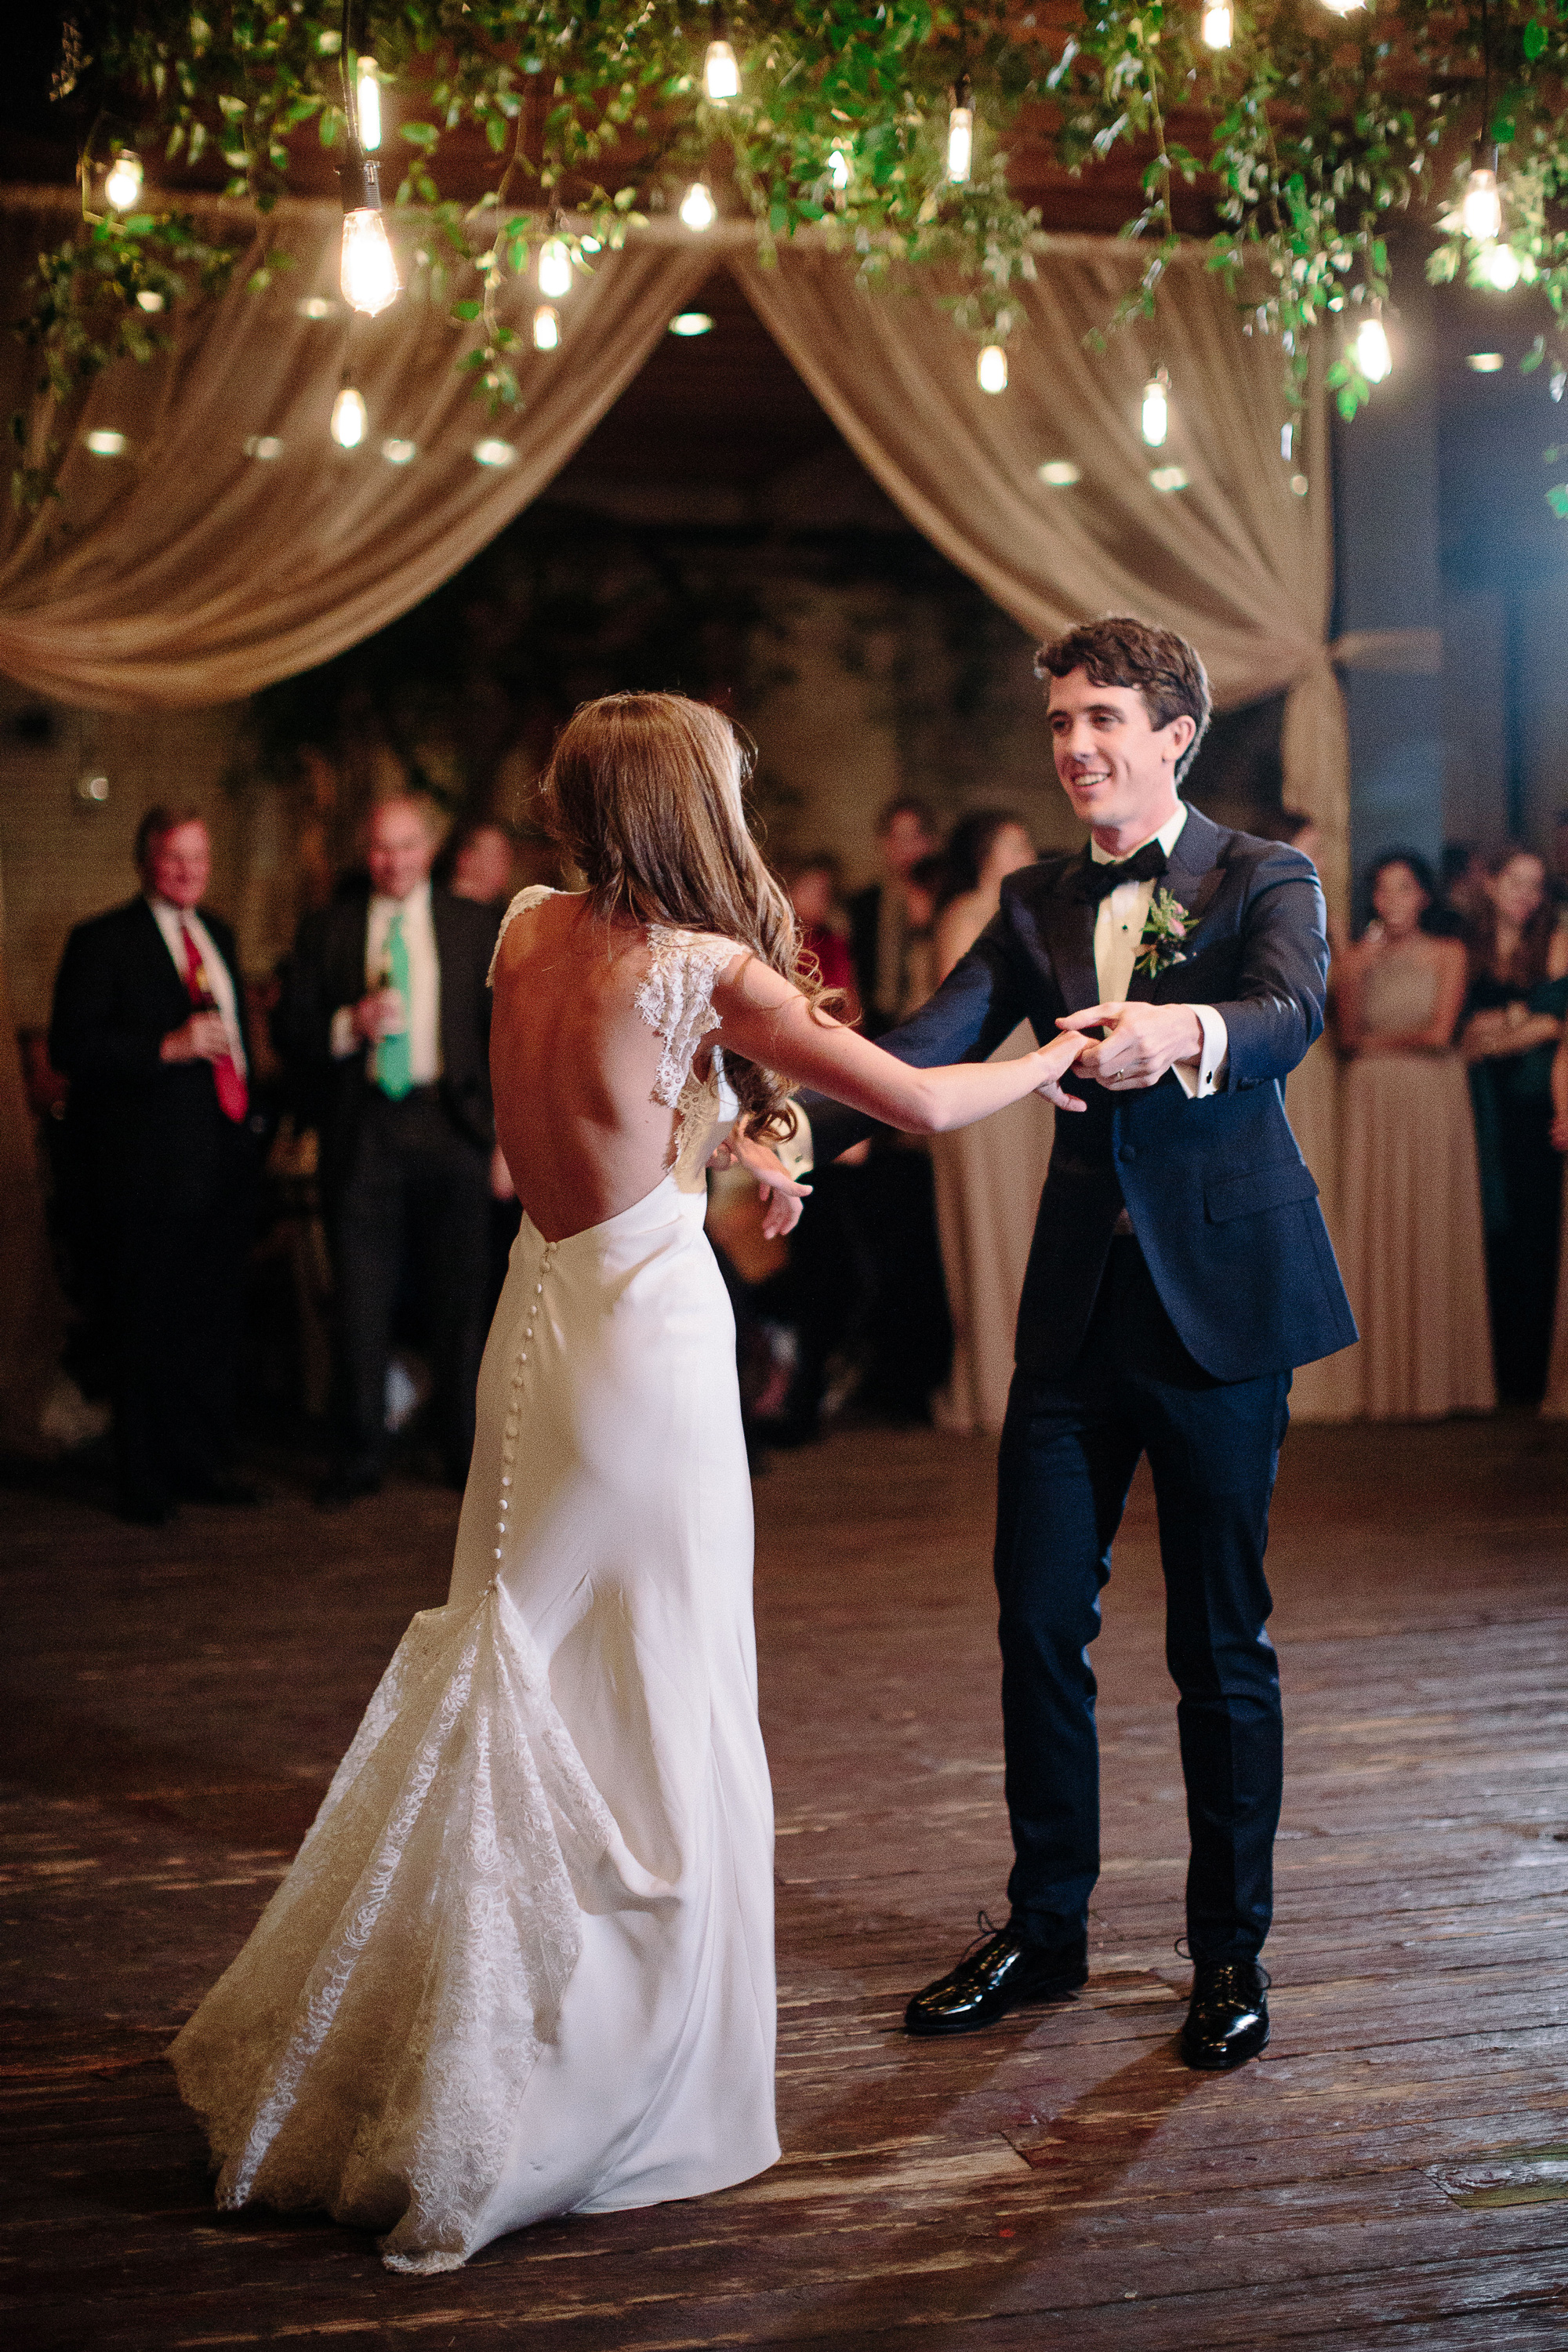 Every Wedding Dance You Should Consider for Your Reception